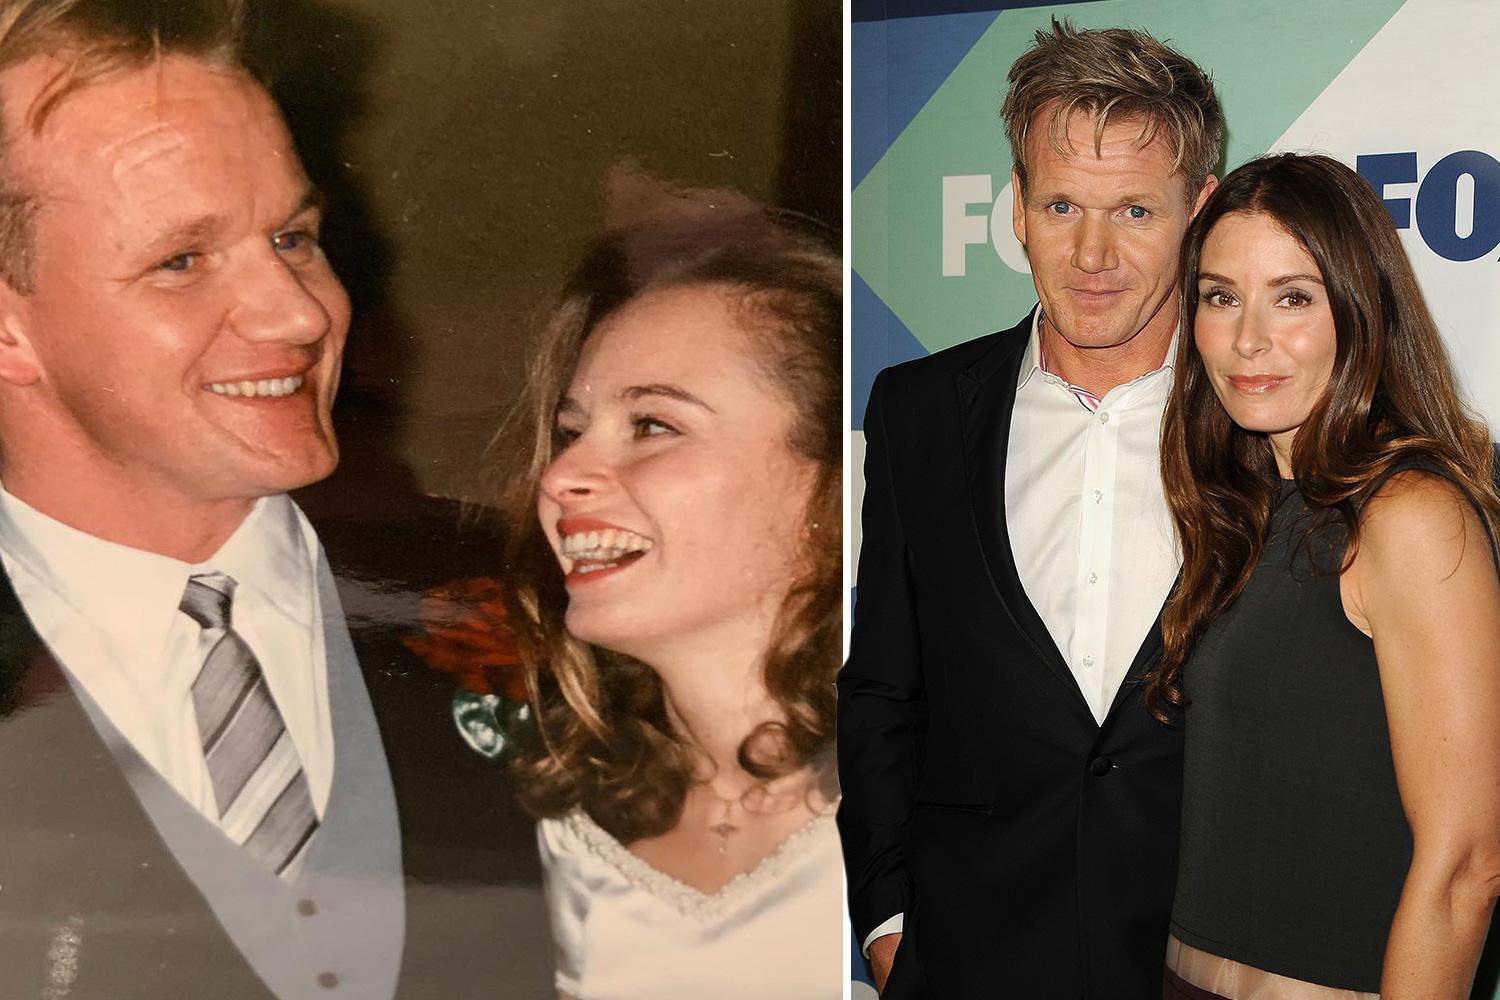 Gordon Ramsay shares amazing throwback snap with wife Tana to celebrate 22nd wedding anniversary